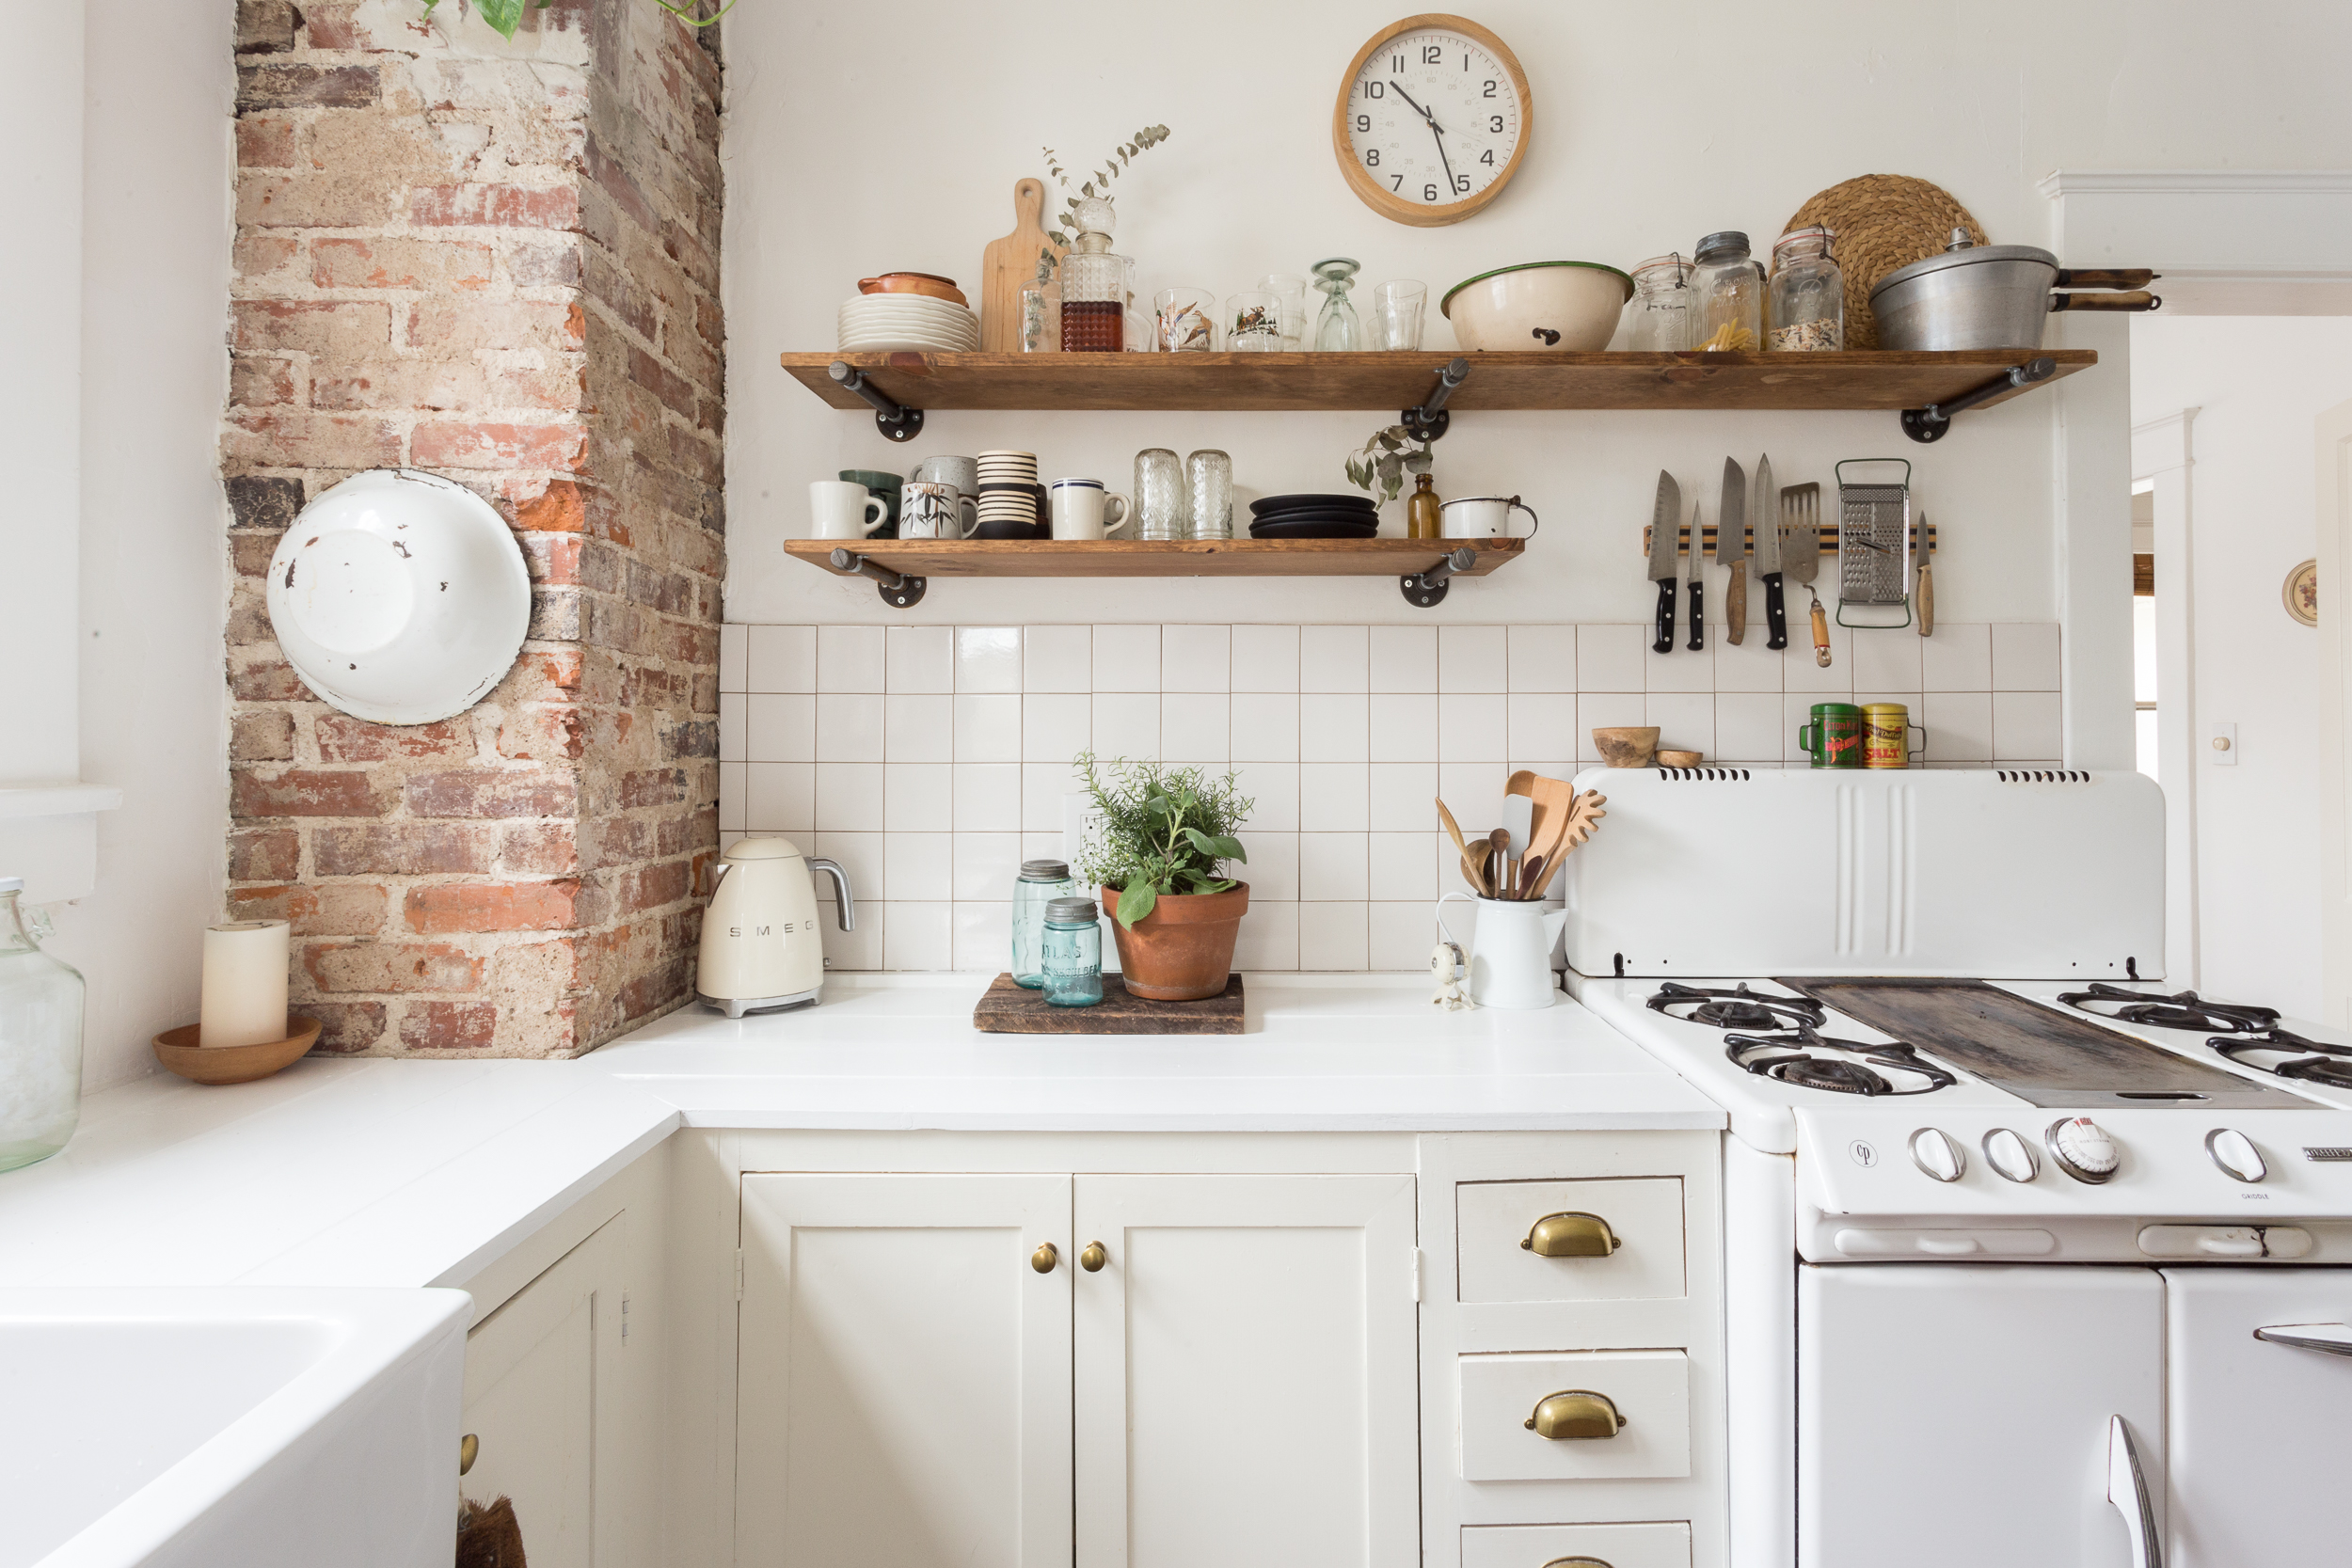 Open Kitchen Shelving Advice & Secrets | Apartment Therapy on decorating tips above kitchen cabinets, interior decorating above kitchen cabinets, wasted space above kitchen cabinets,